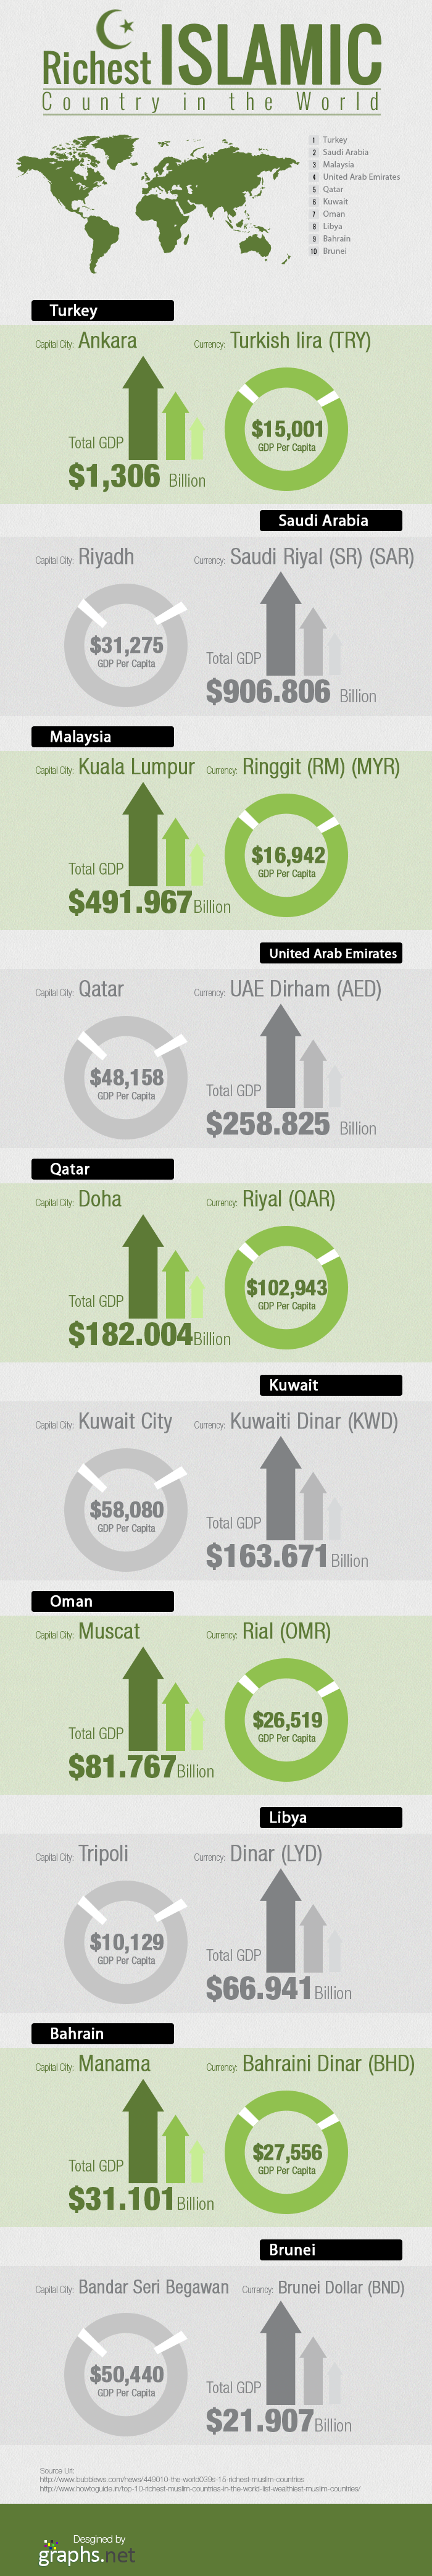 Richest Islamic Countries in the World